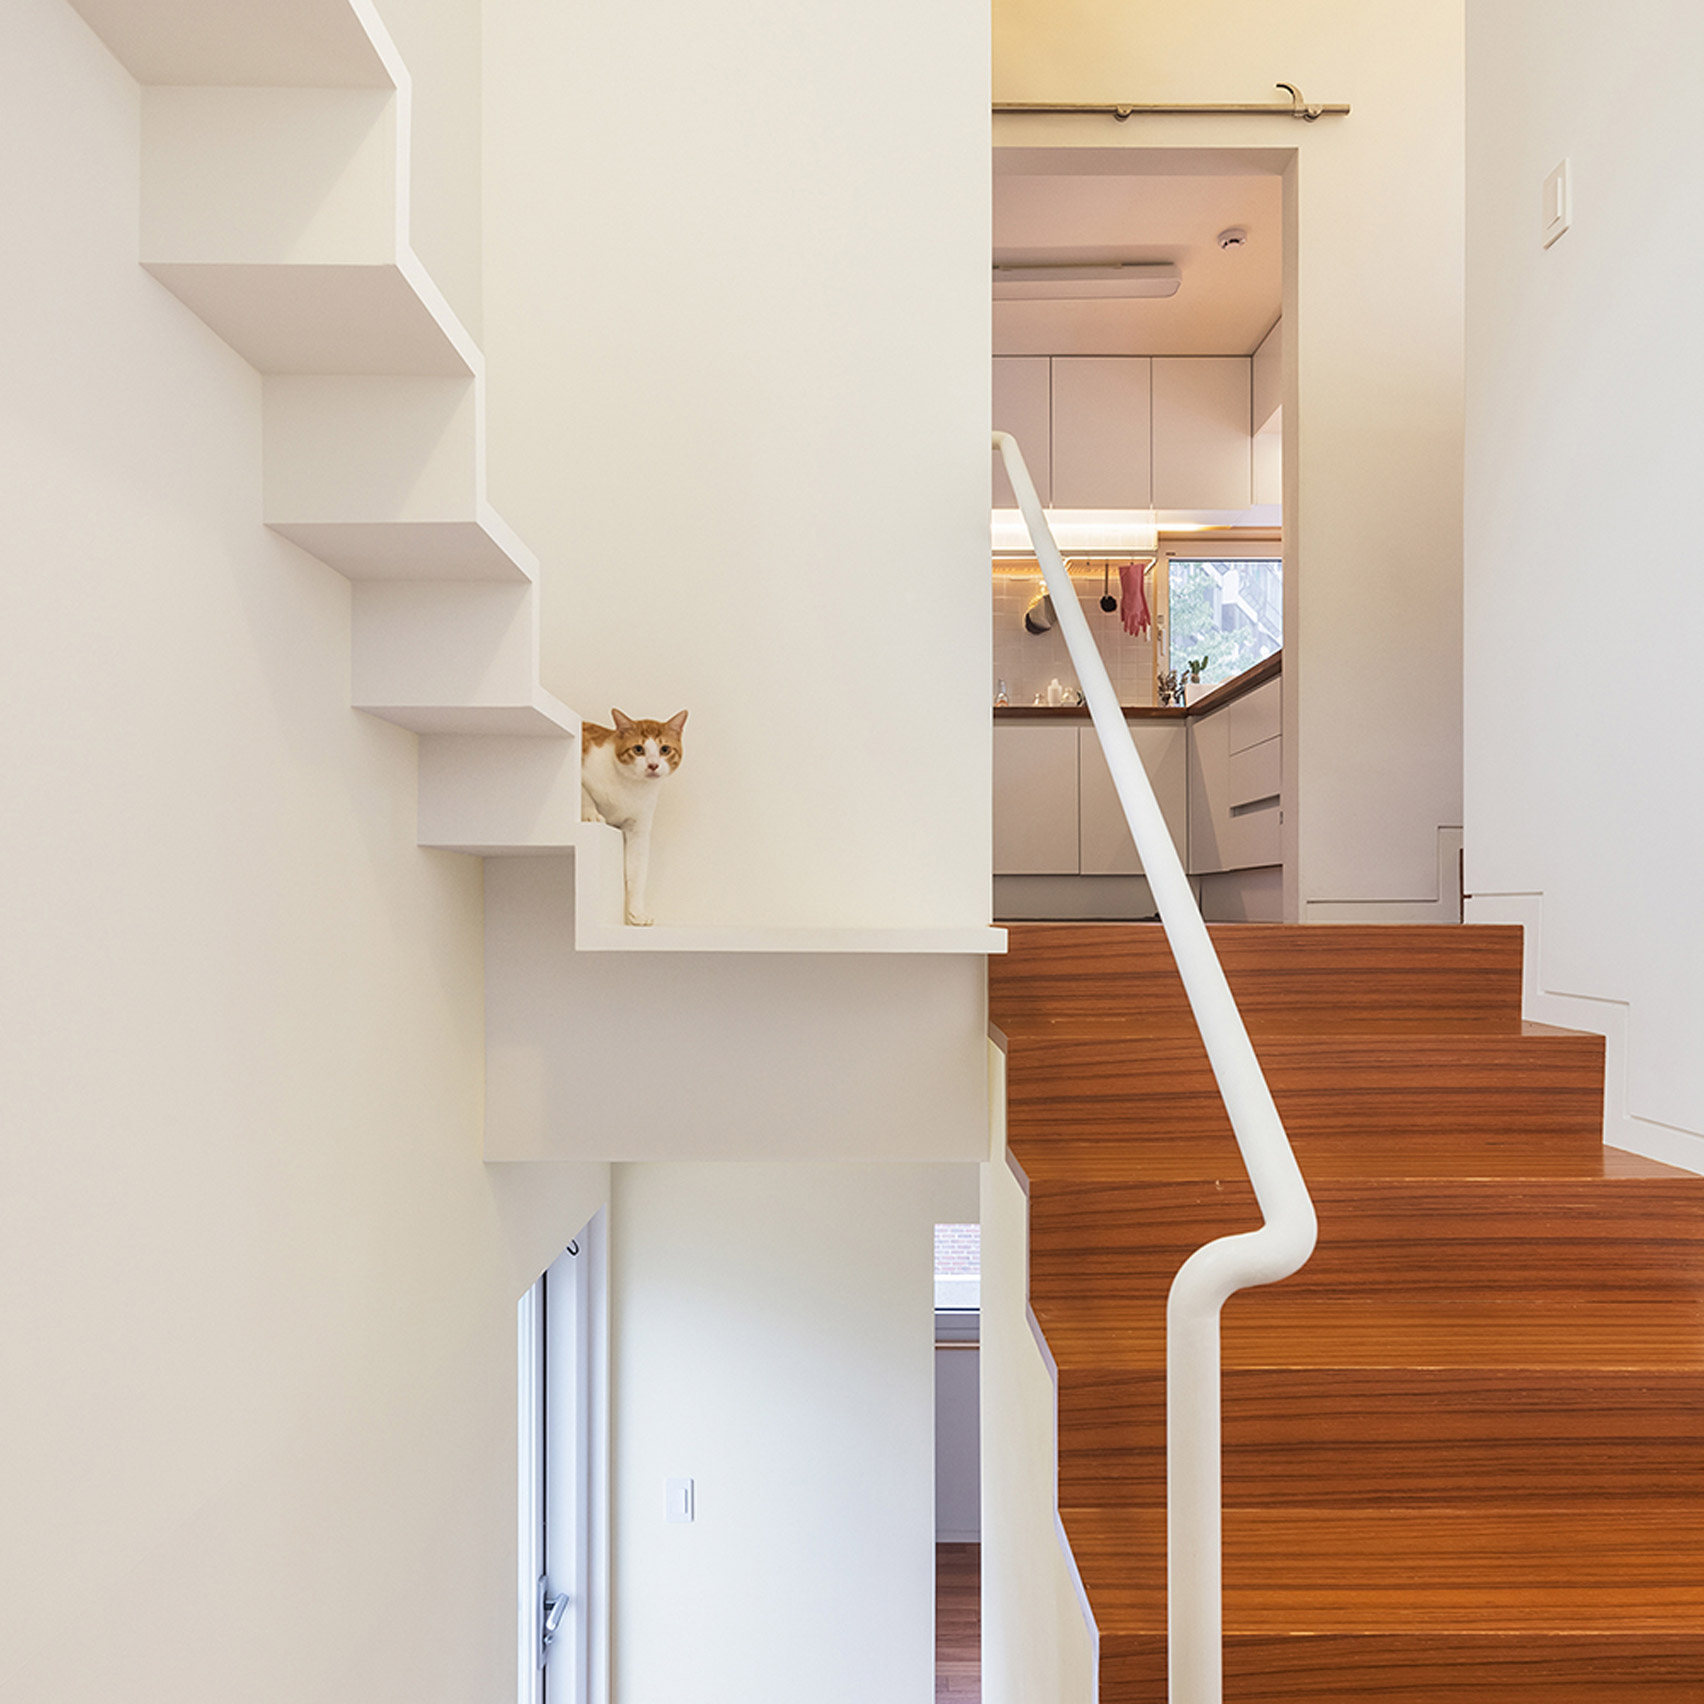 Uncategorized Cat Walkway In House six houses designed as playgrounds for cats